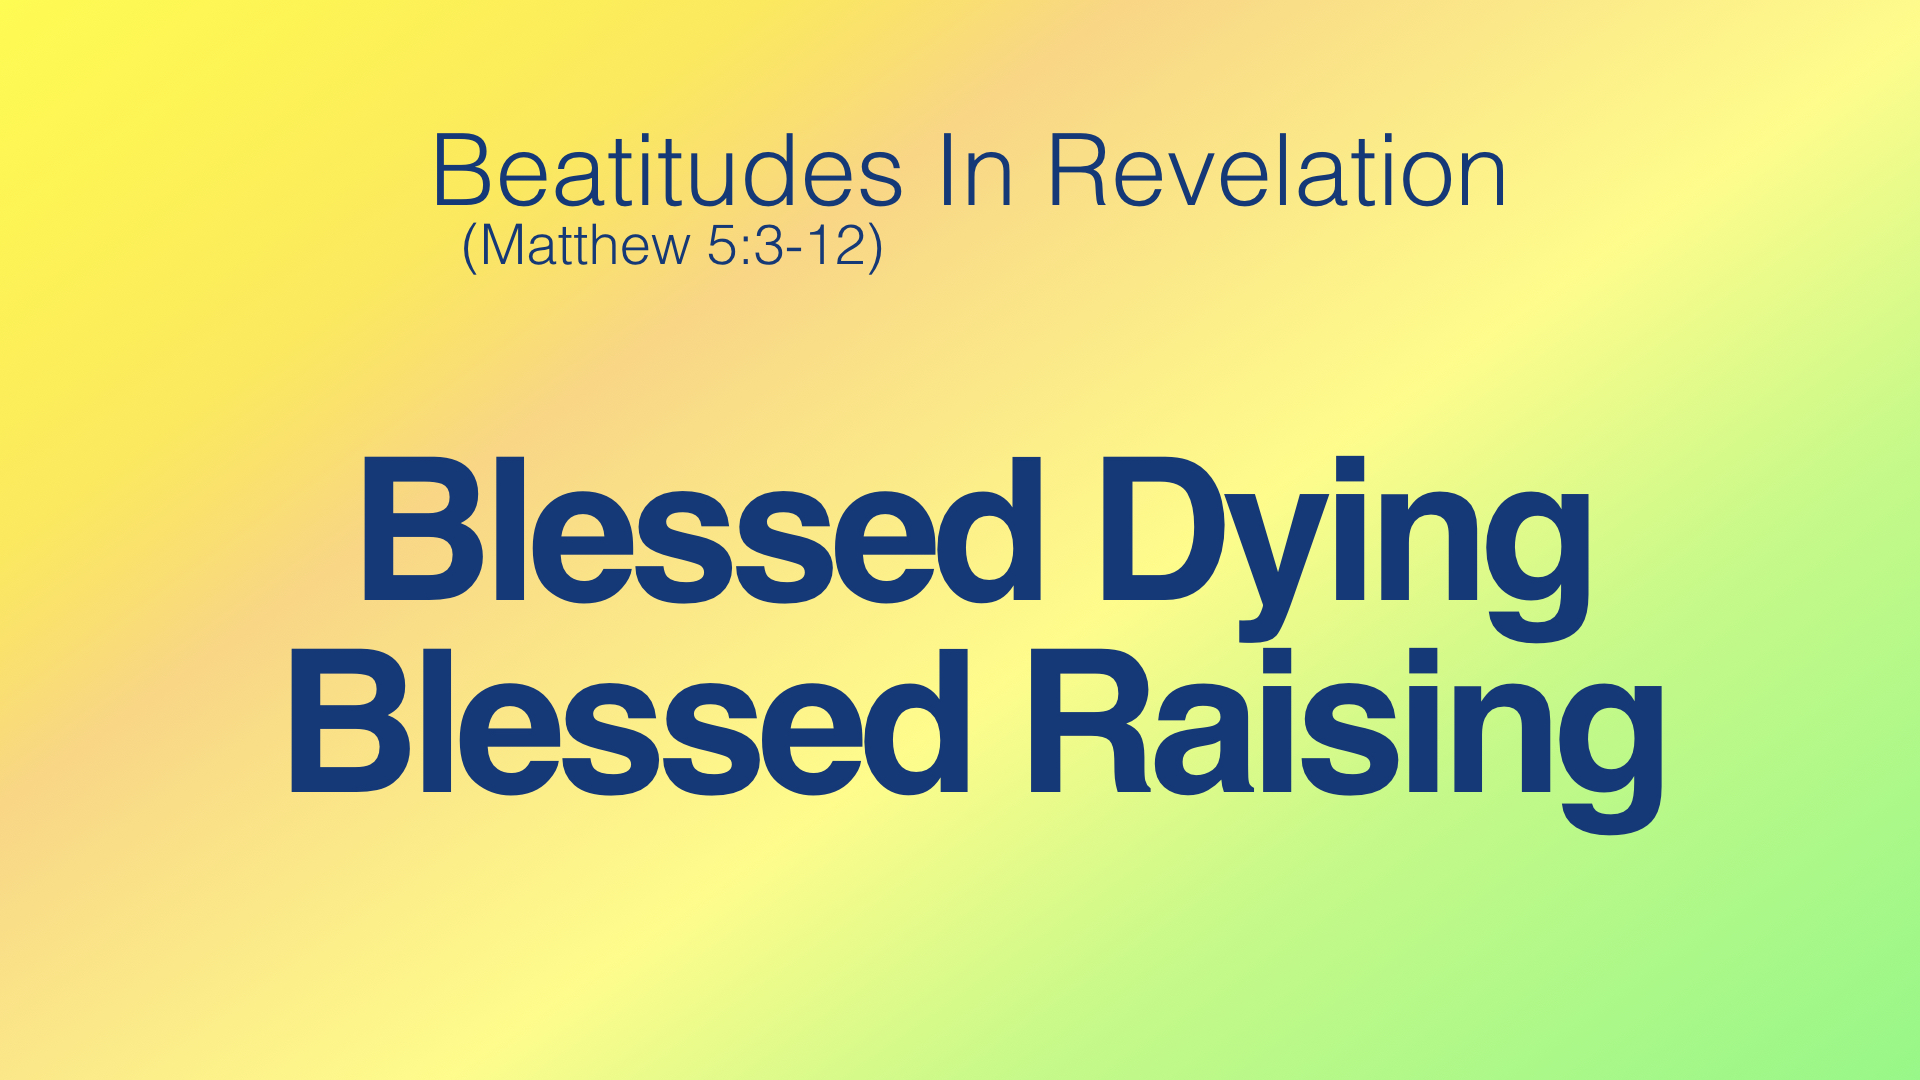 Beatitudes in Revelation 2019 - 3 Blessed Dying:Blessed Raising WIDE.001.jpeg